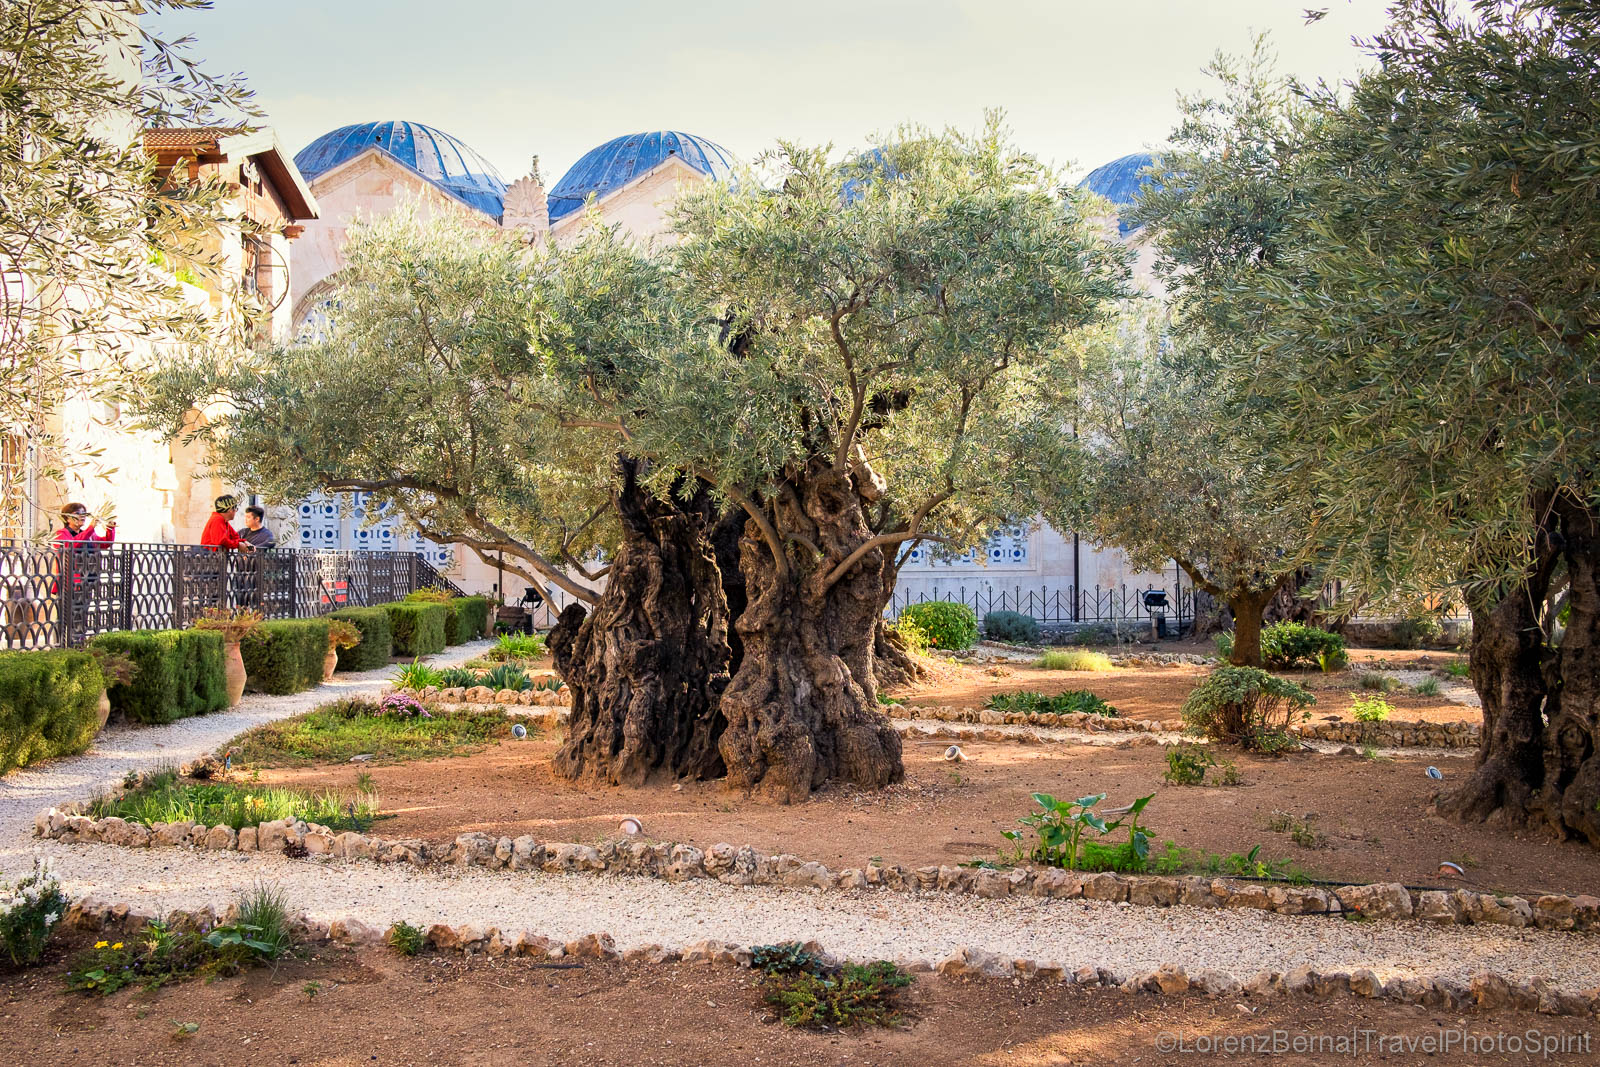 Ancient olive tree in Gethsemane, on the Mount of Olives in Jerusalem, Israel.